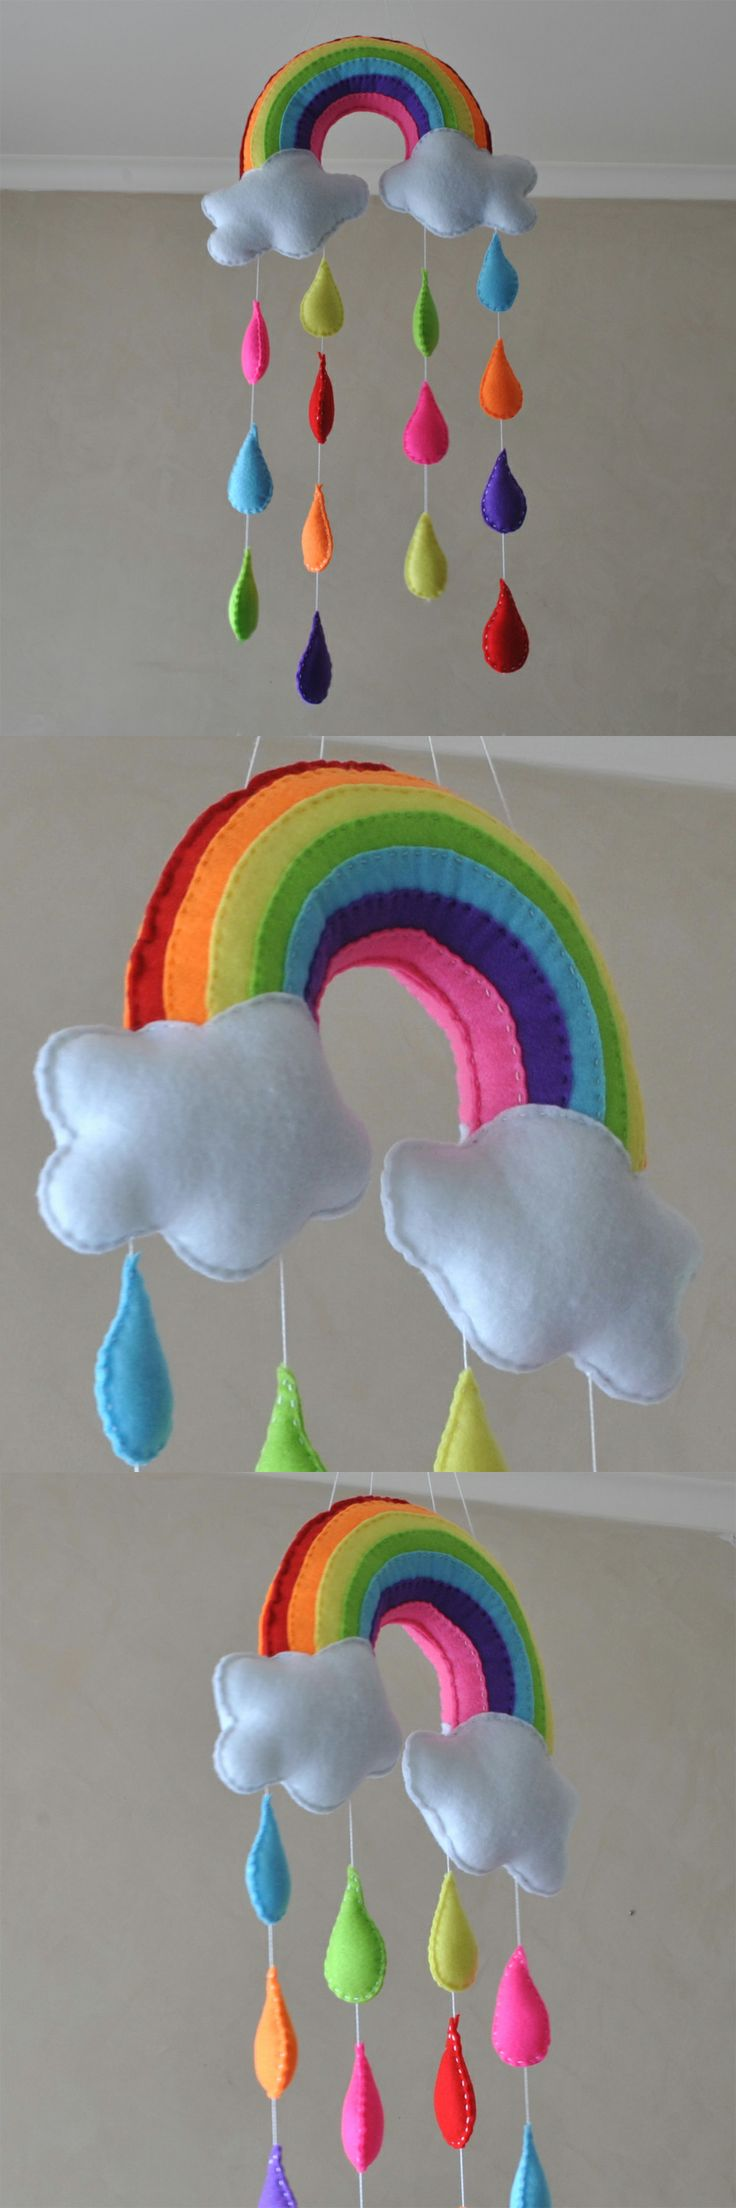 Somewhere over the rainbow mobile [Rainbow with raindrops - Baby mobile] by RazzleDazzle4U on Etsy